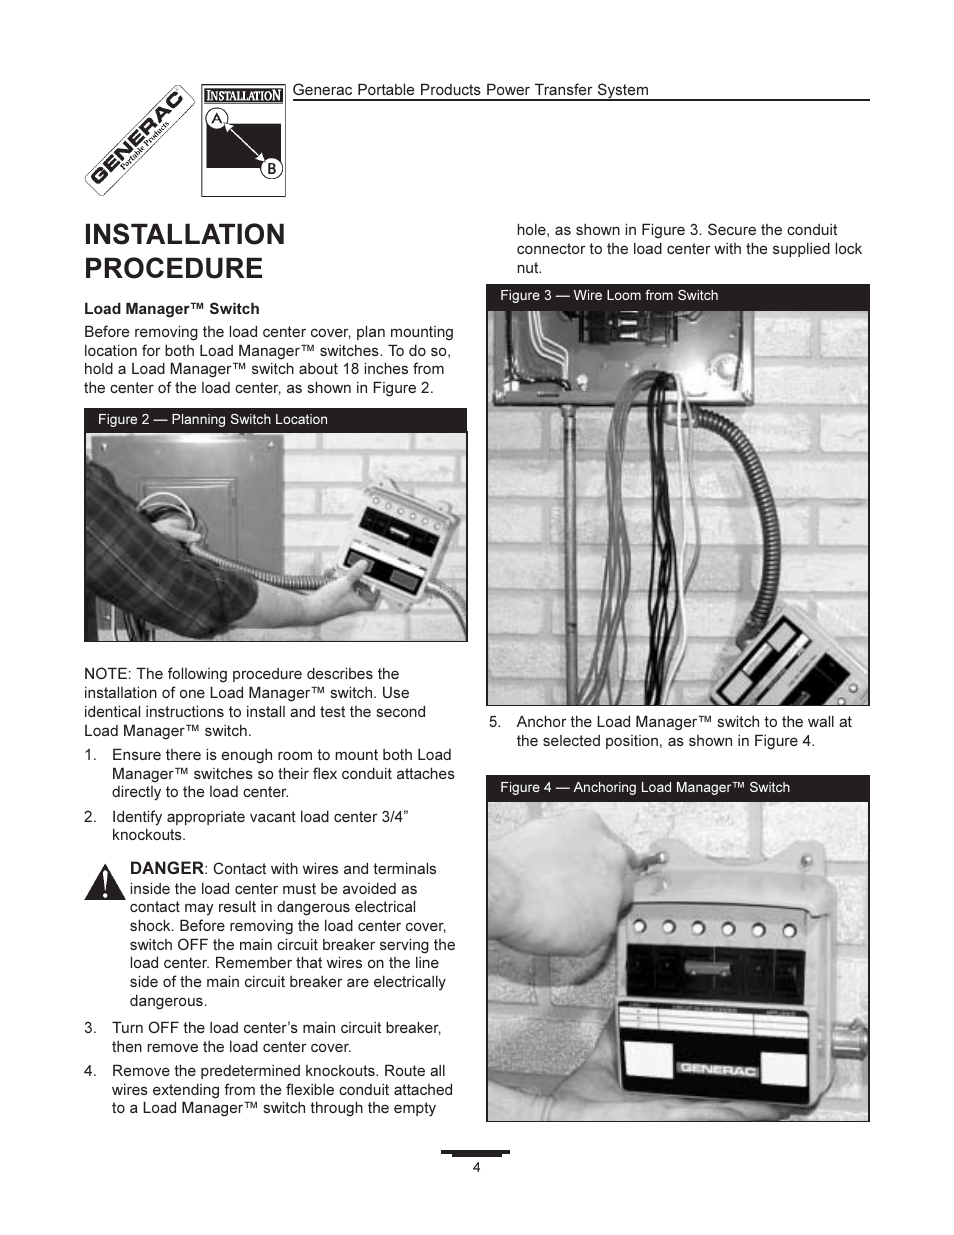 Installation Procedure Generac 1403 0 User Manual Page 4 16 Wiring Instructions